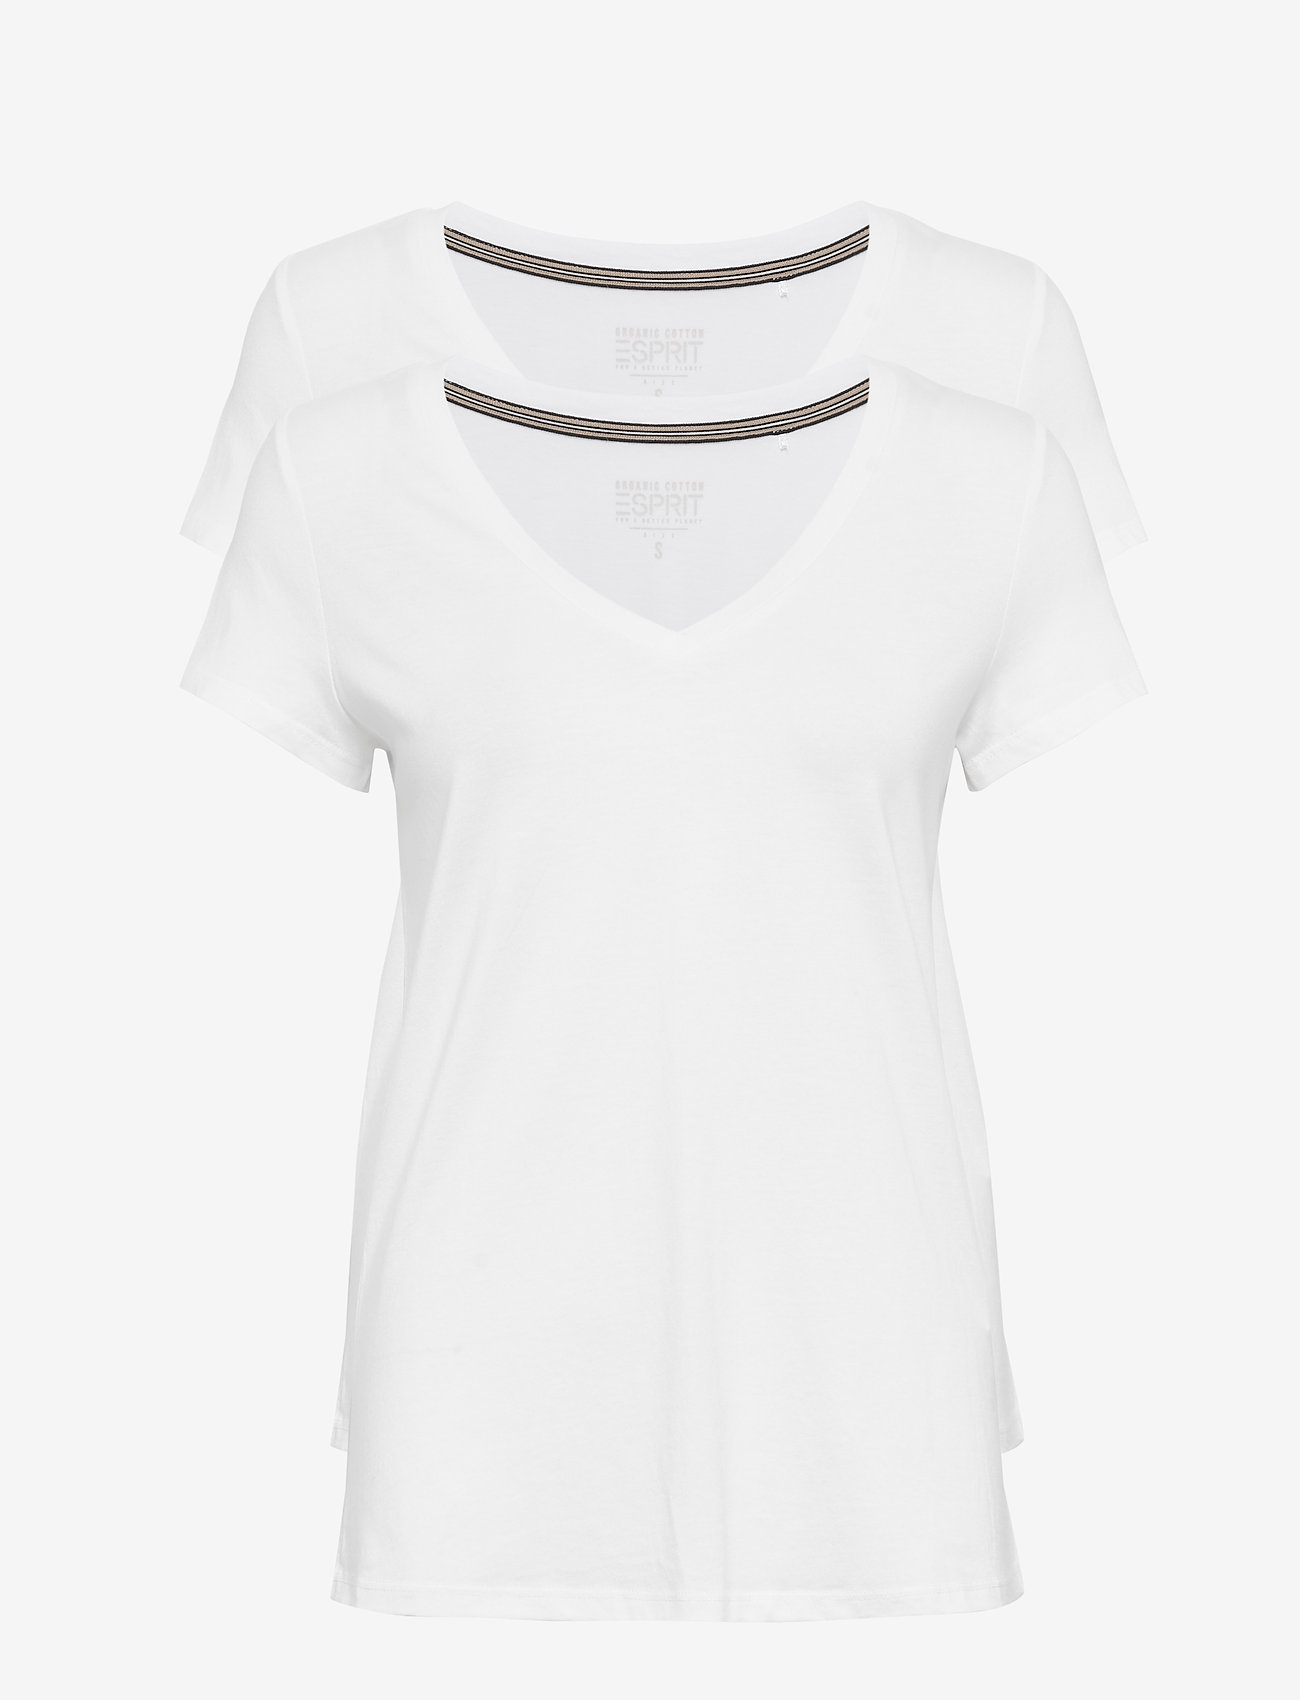 Esprit Casual - Mixed Sets - t-shirts - white - 0